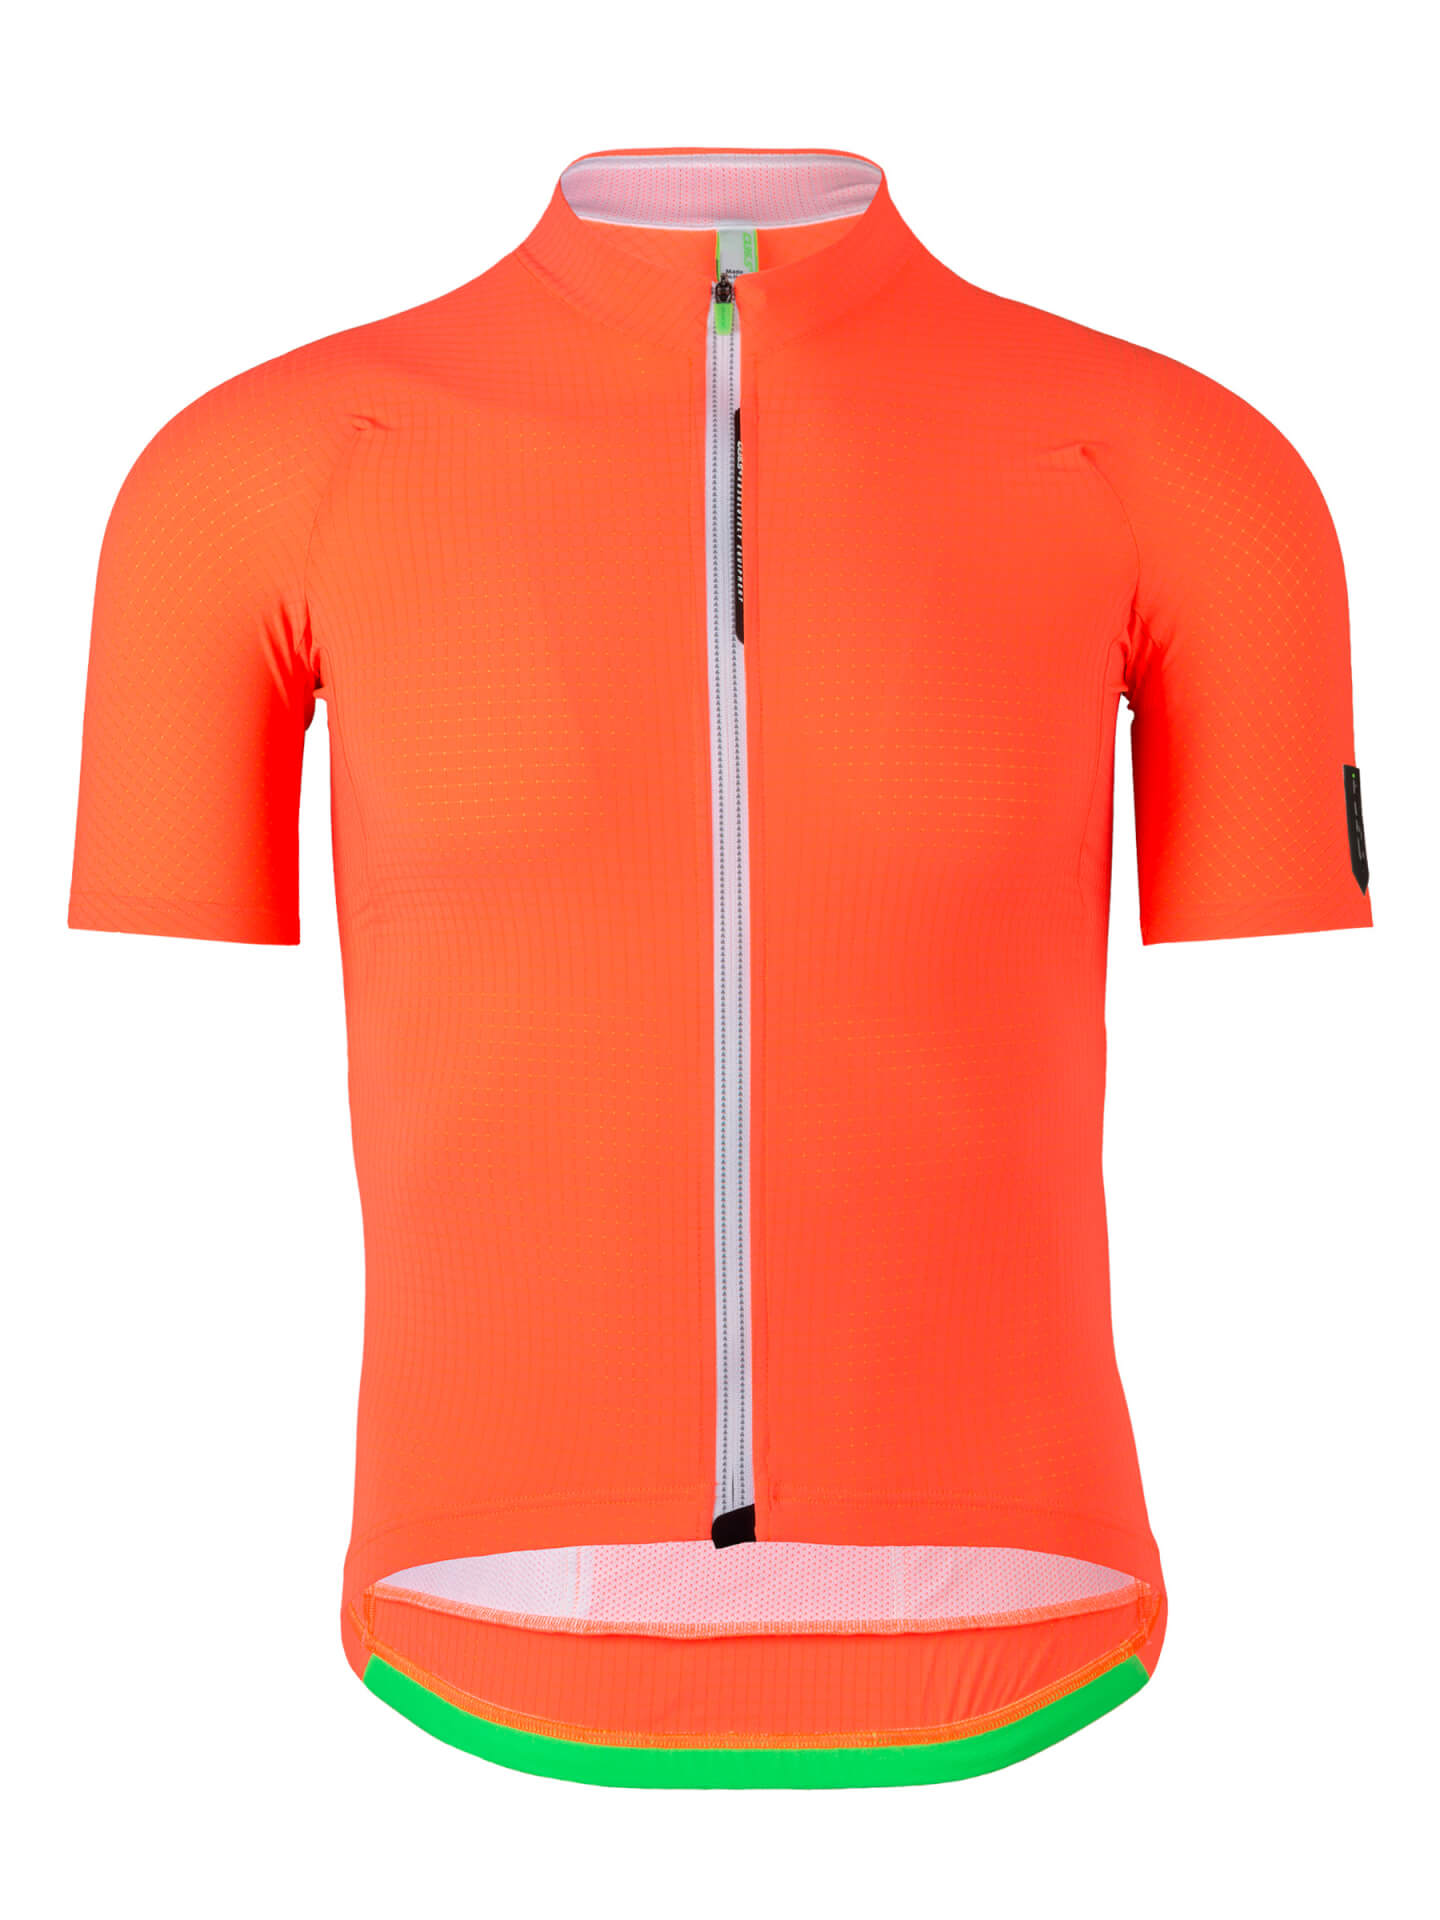 Mens cycling jersey L1 Pinstripe Q36.5 orange fluo